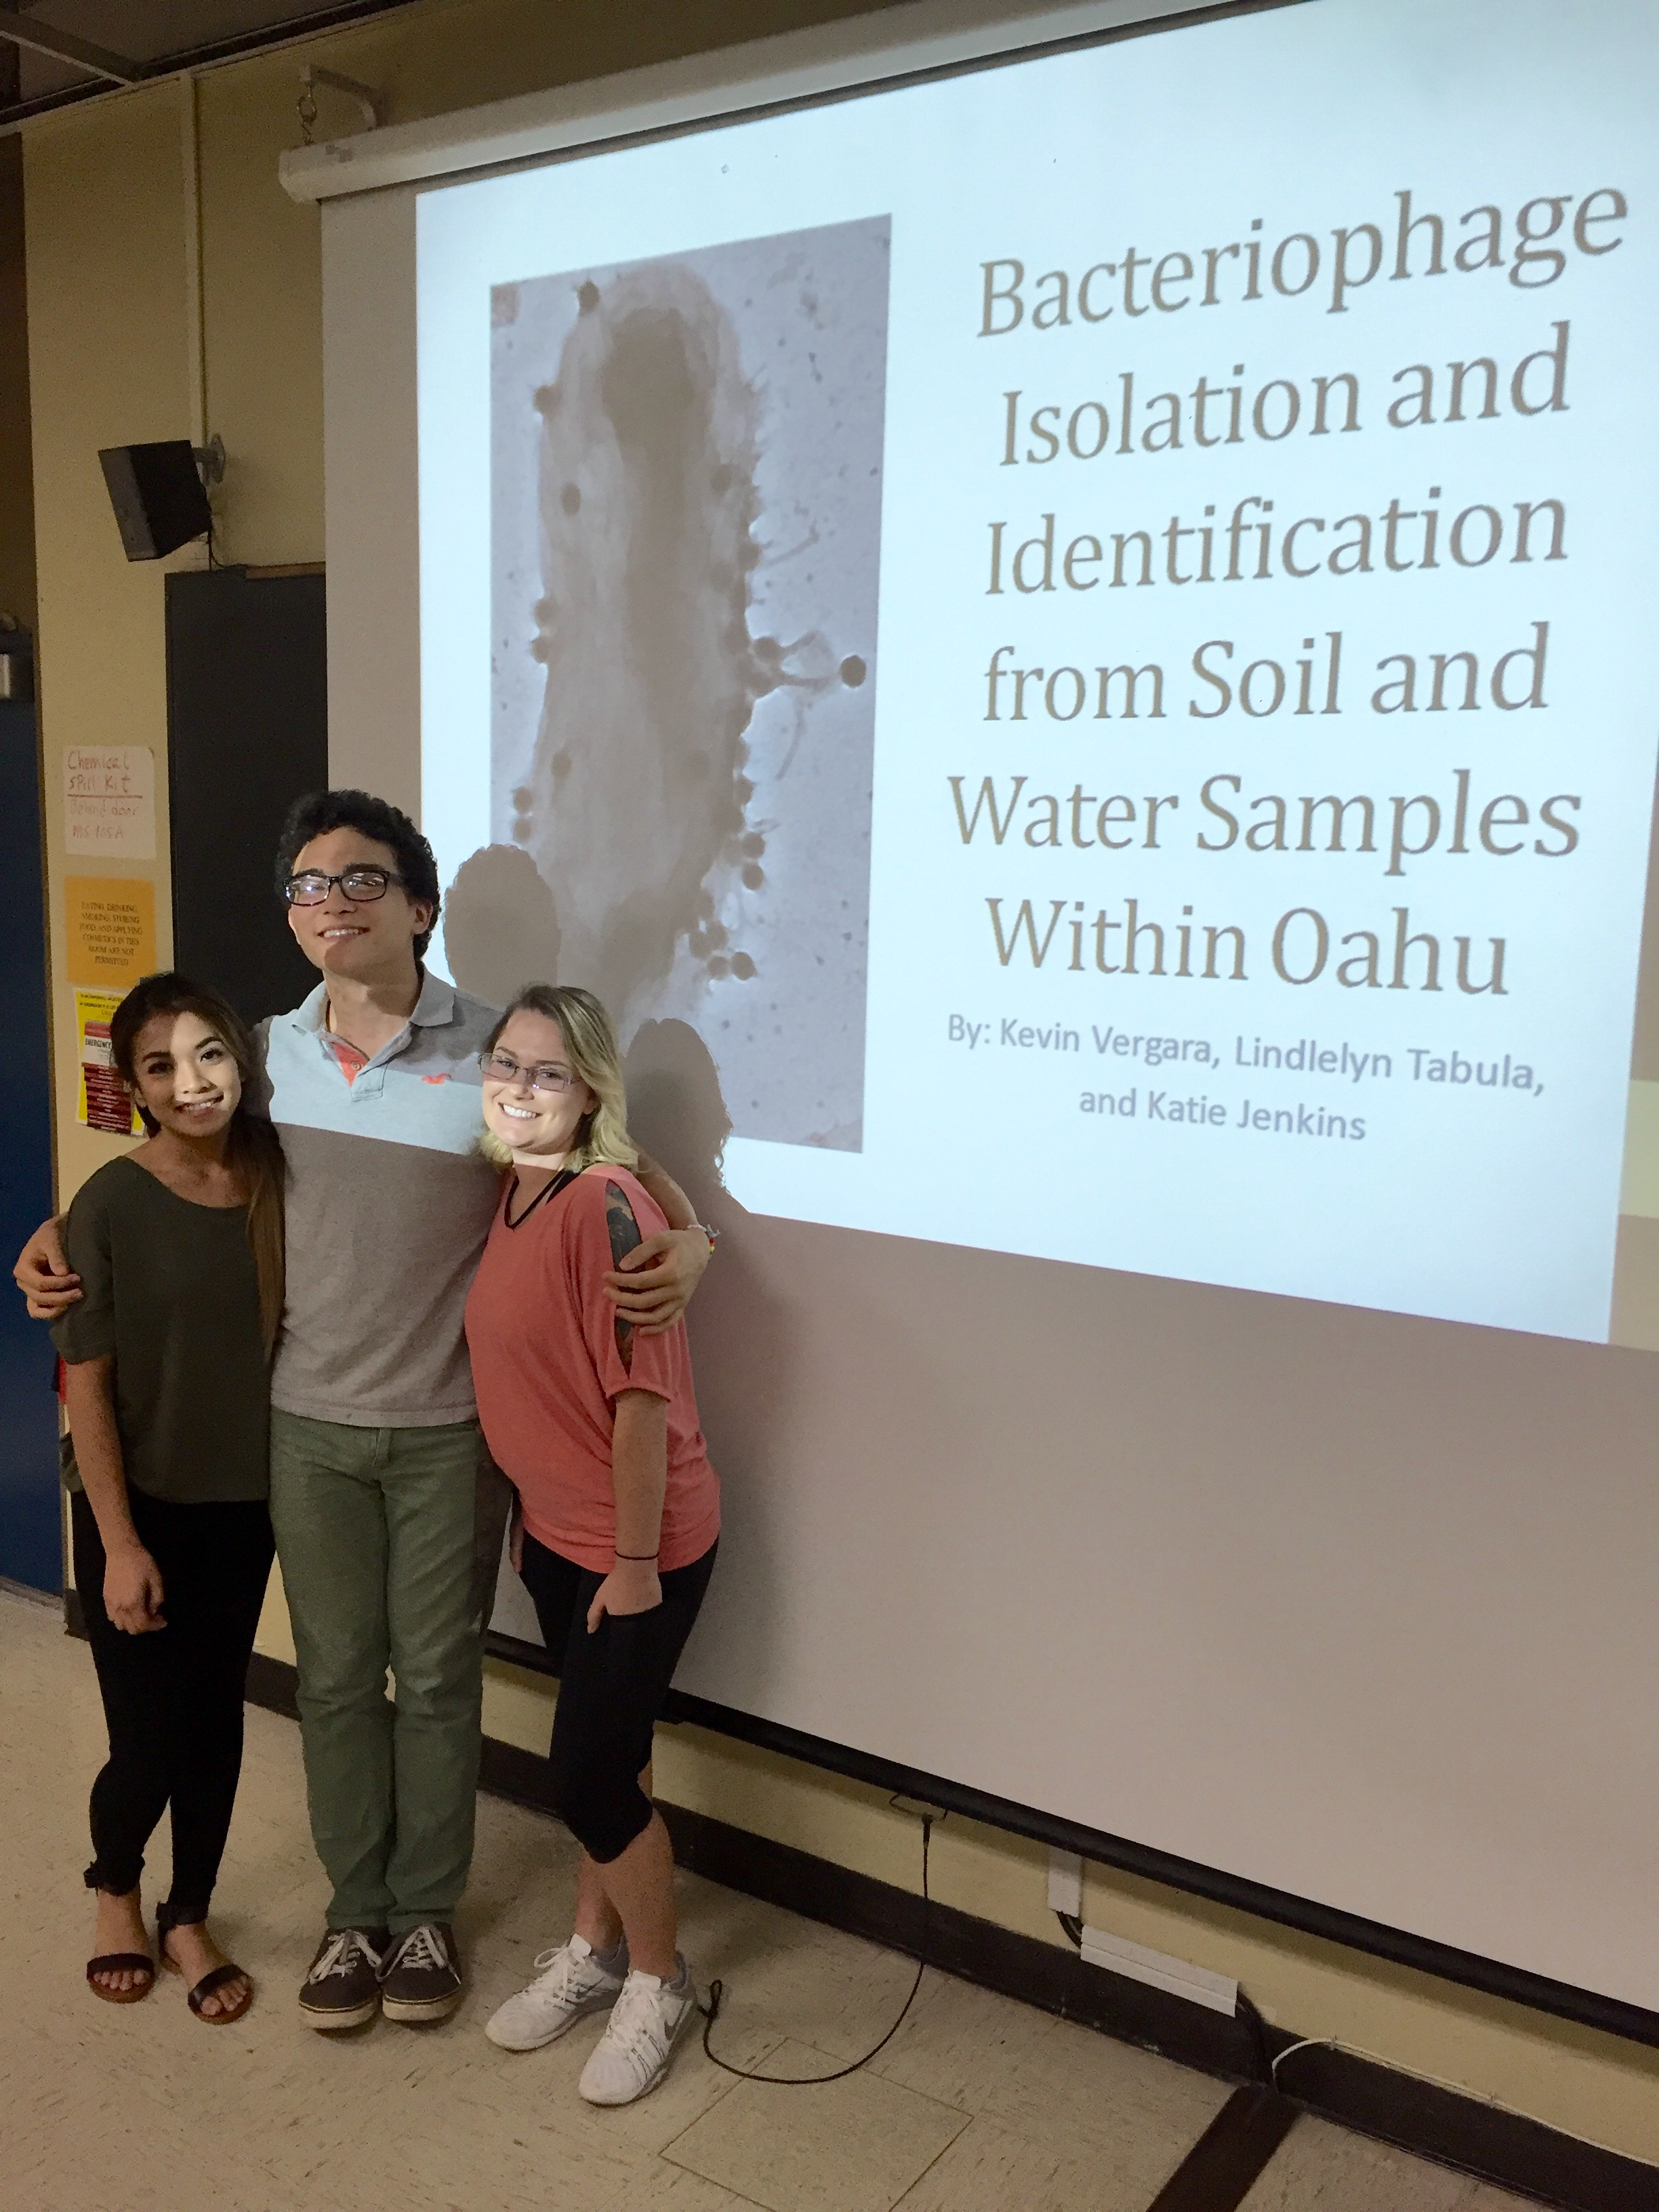 """Bacteriophage Isolation and Identification from Soil and Water Samples within Oahu"" by Kevin Vergara, Lindleyn Tabula, and Katie Jenkins"